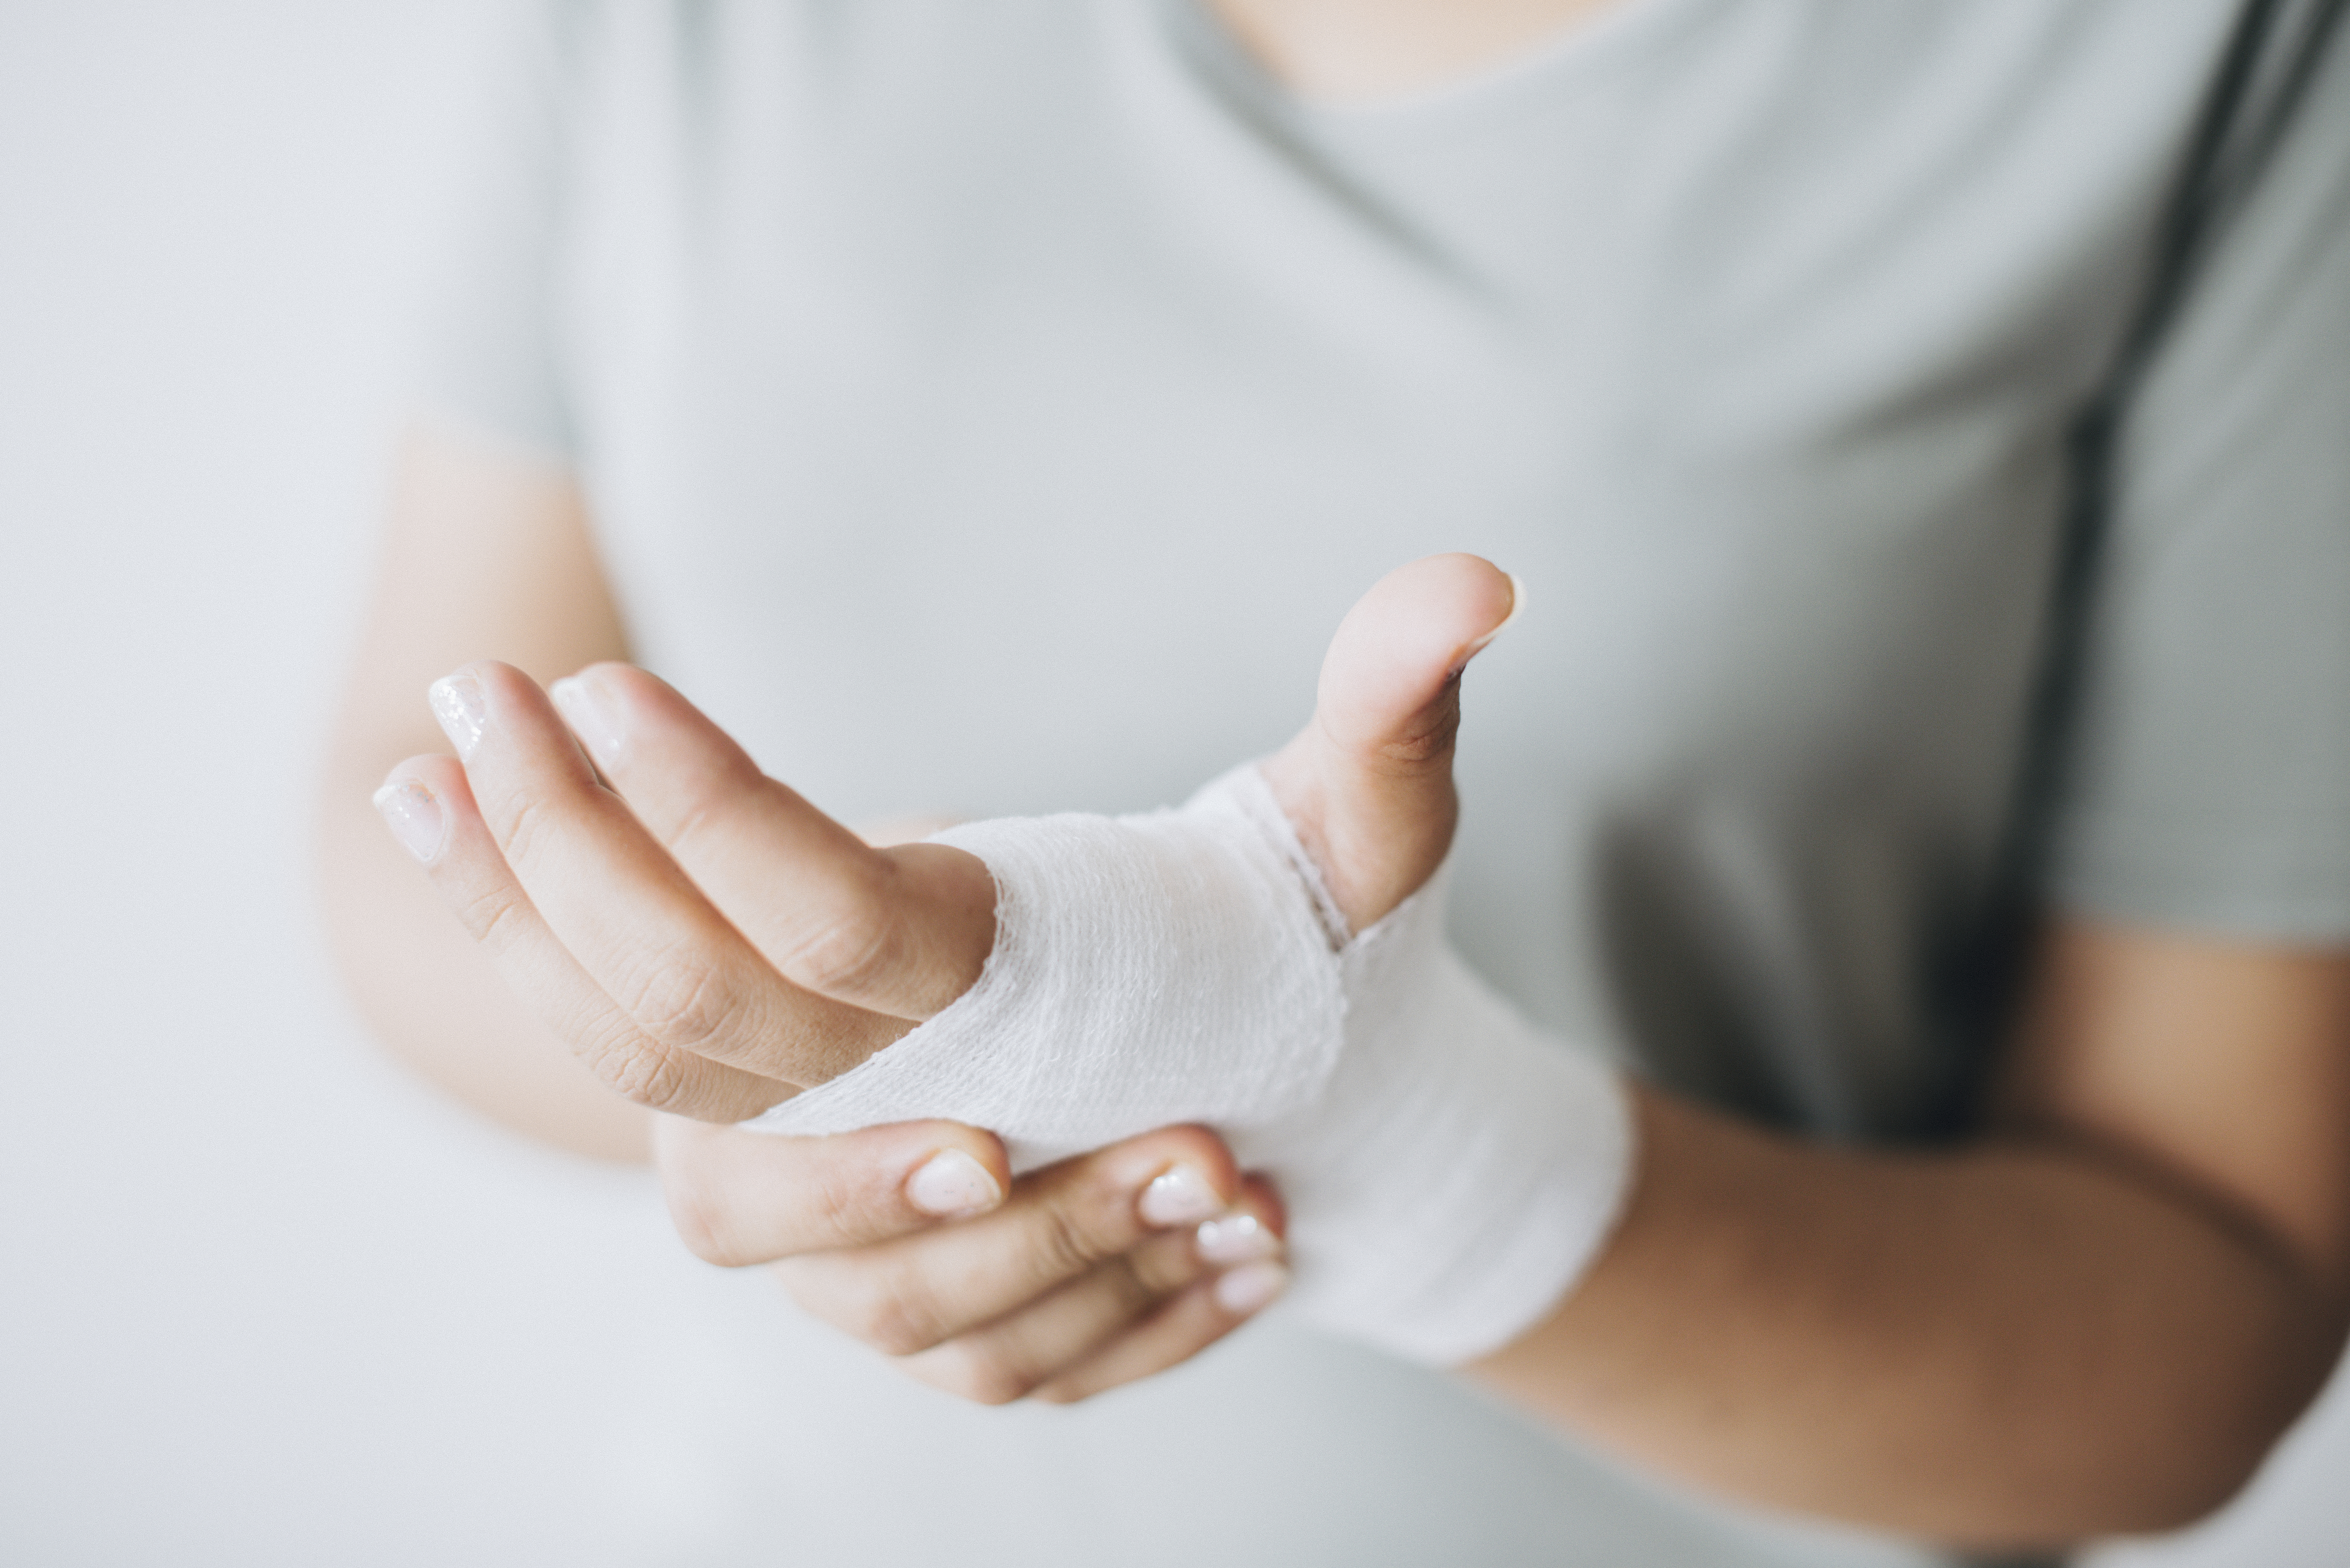 hands rubbing injured wrist